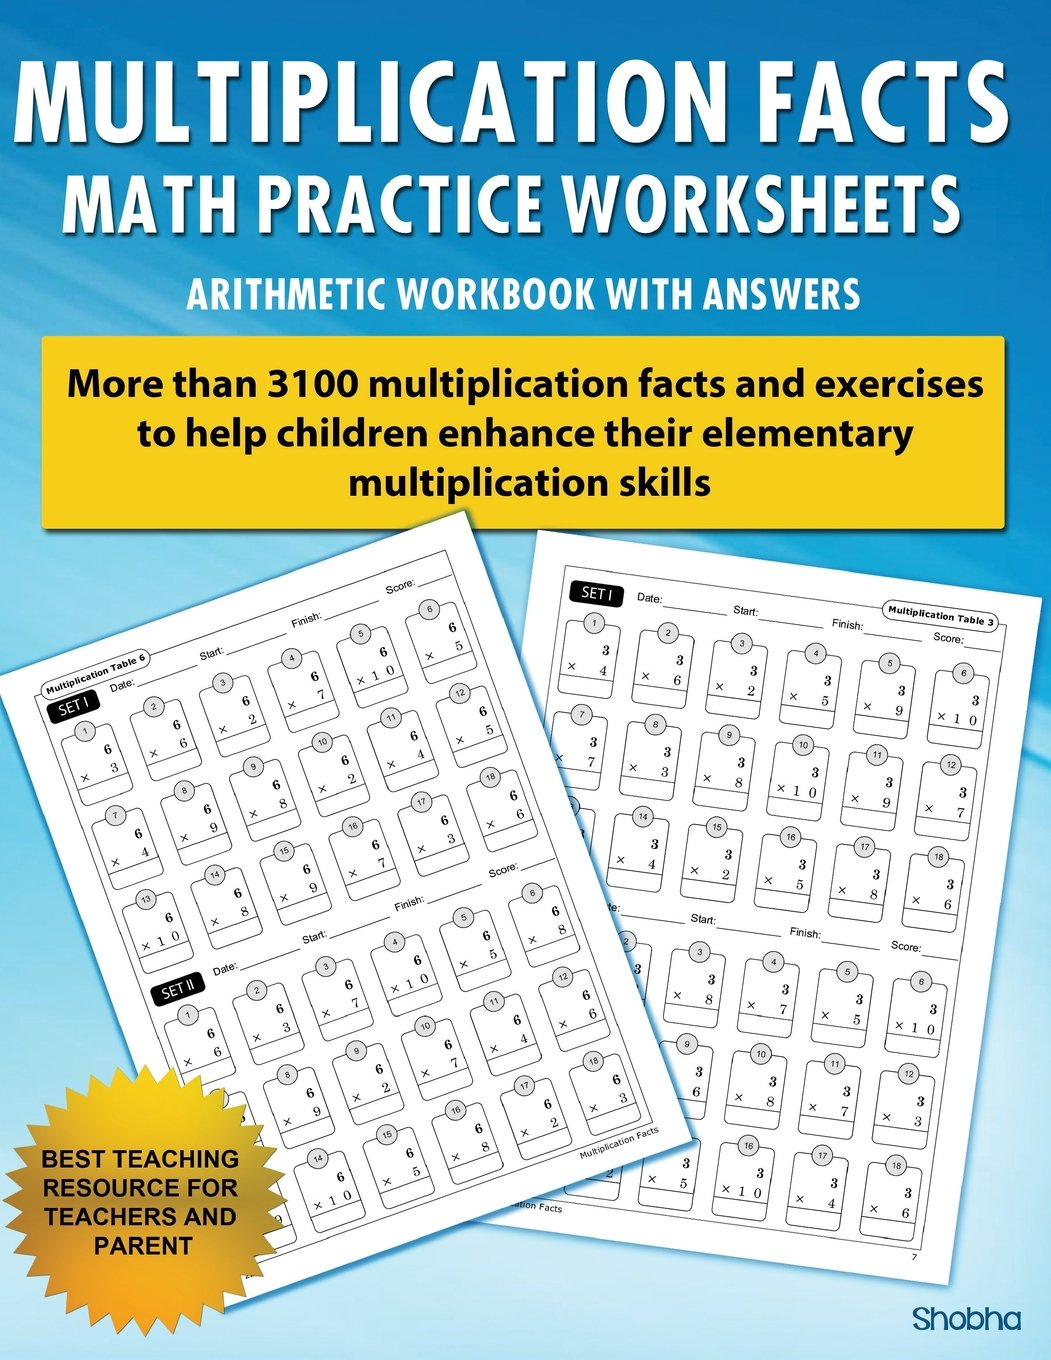 Multiplication Facts Math Worksheet Practice Arithmetic